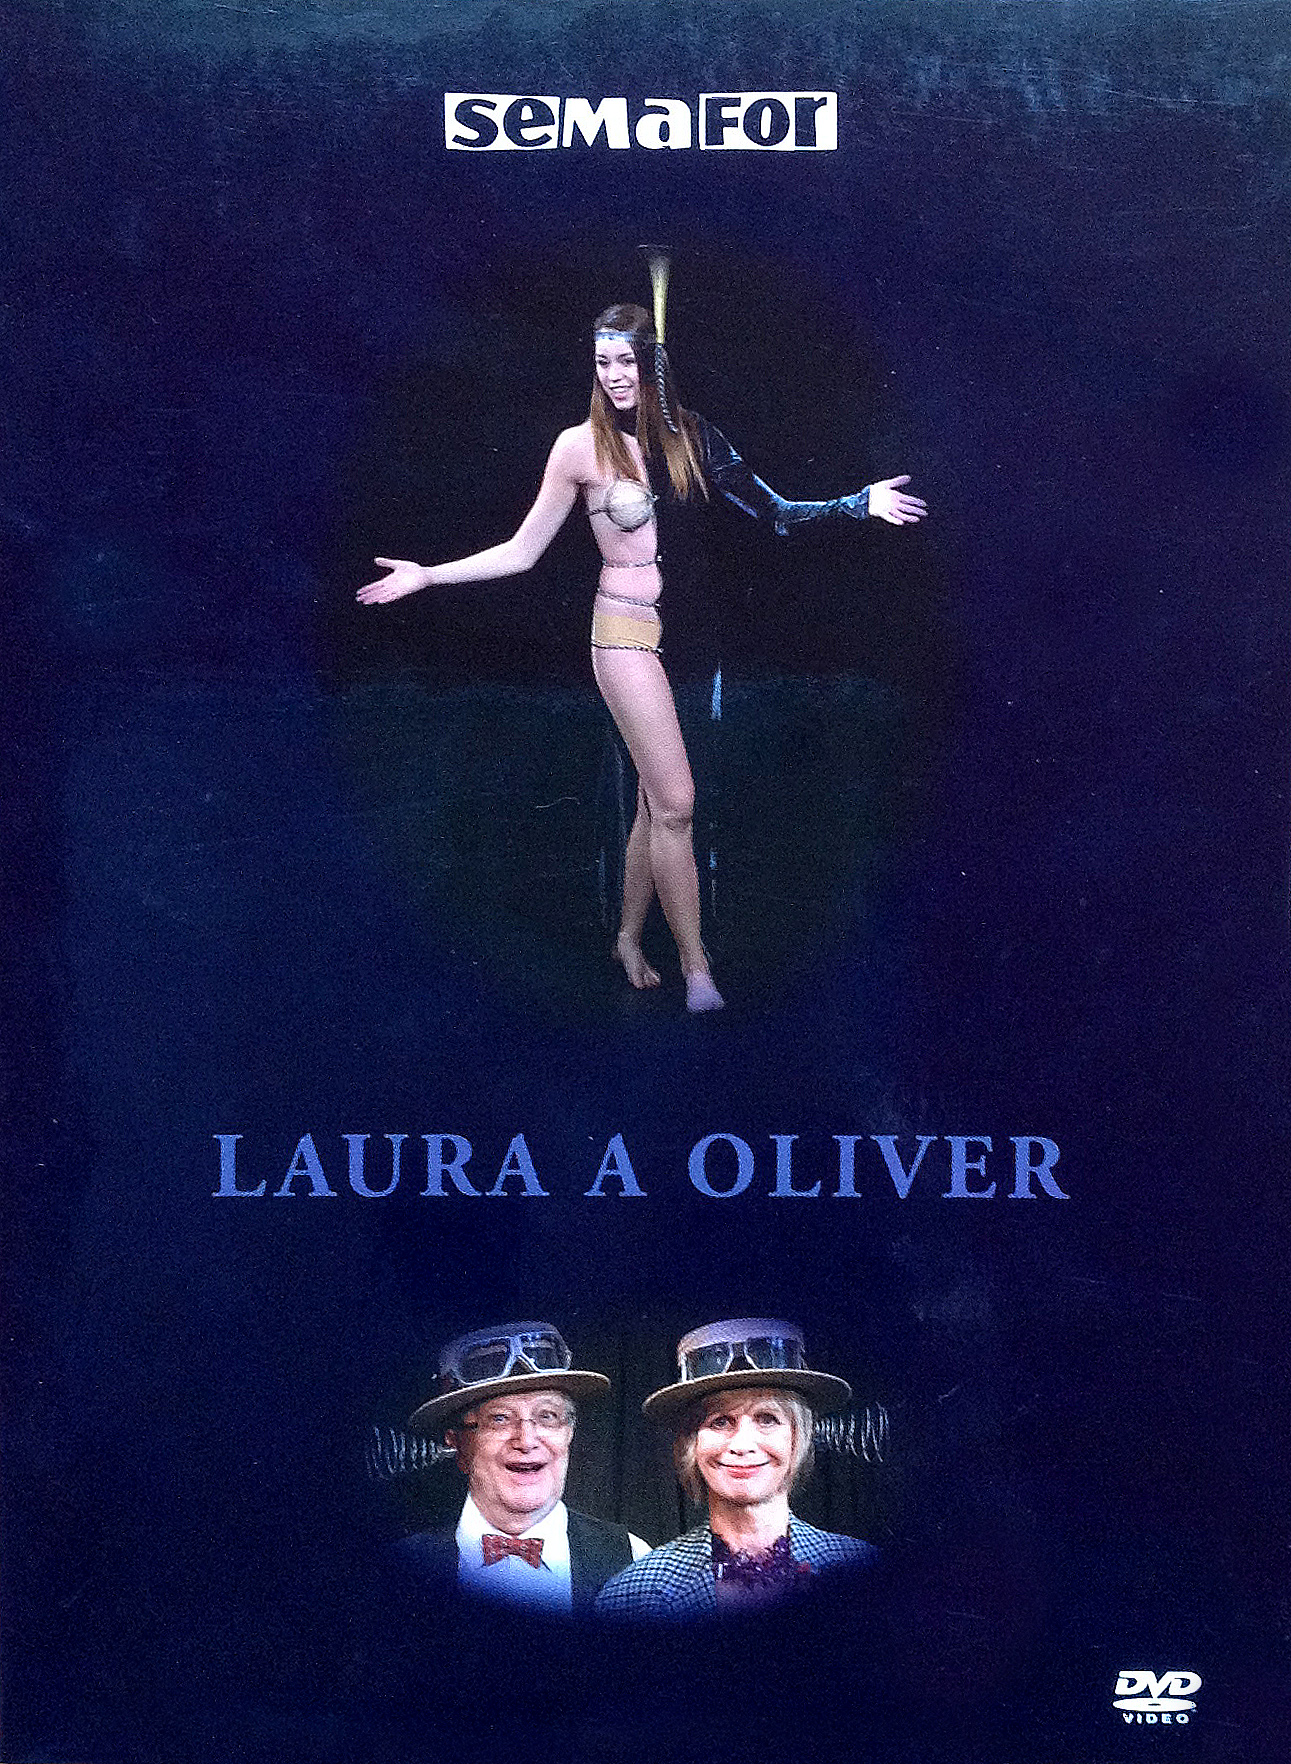 Laura a Oliver